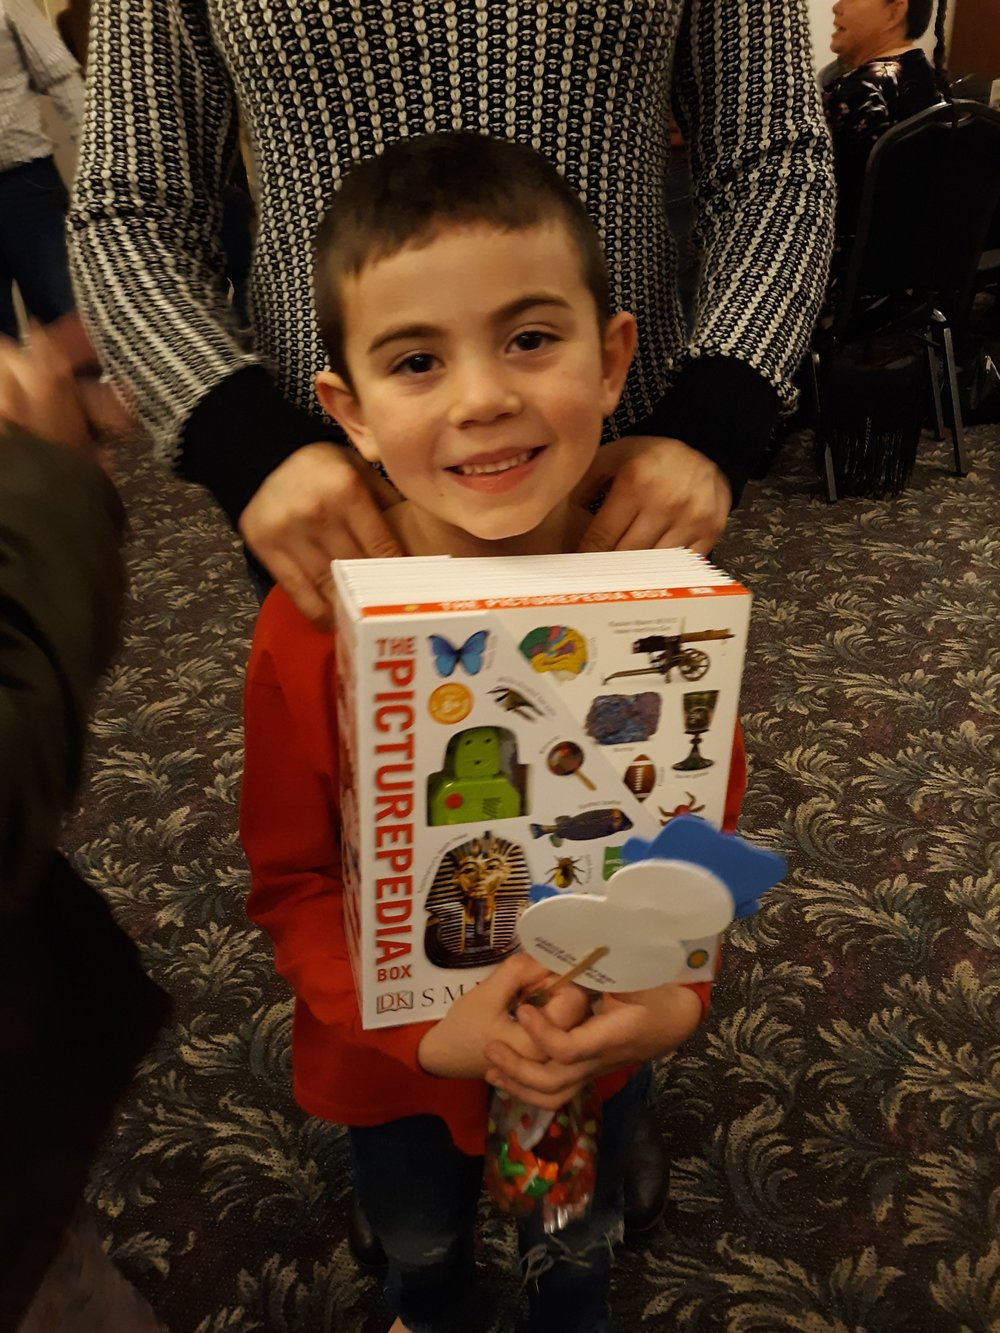 Jared received books that he can use for school.